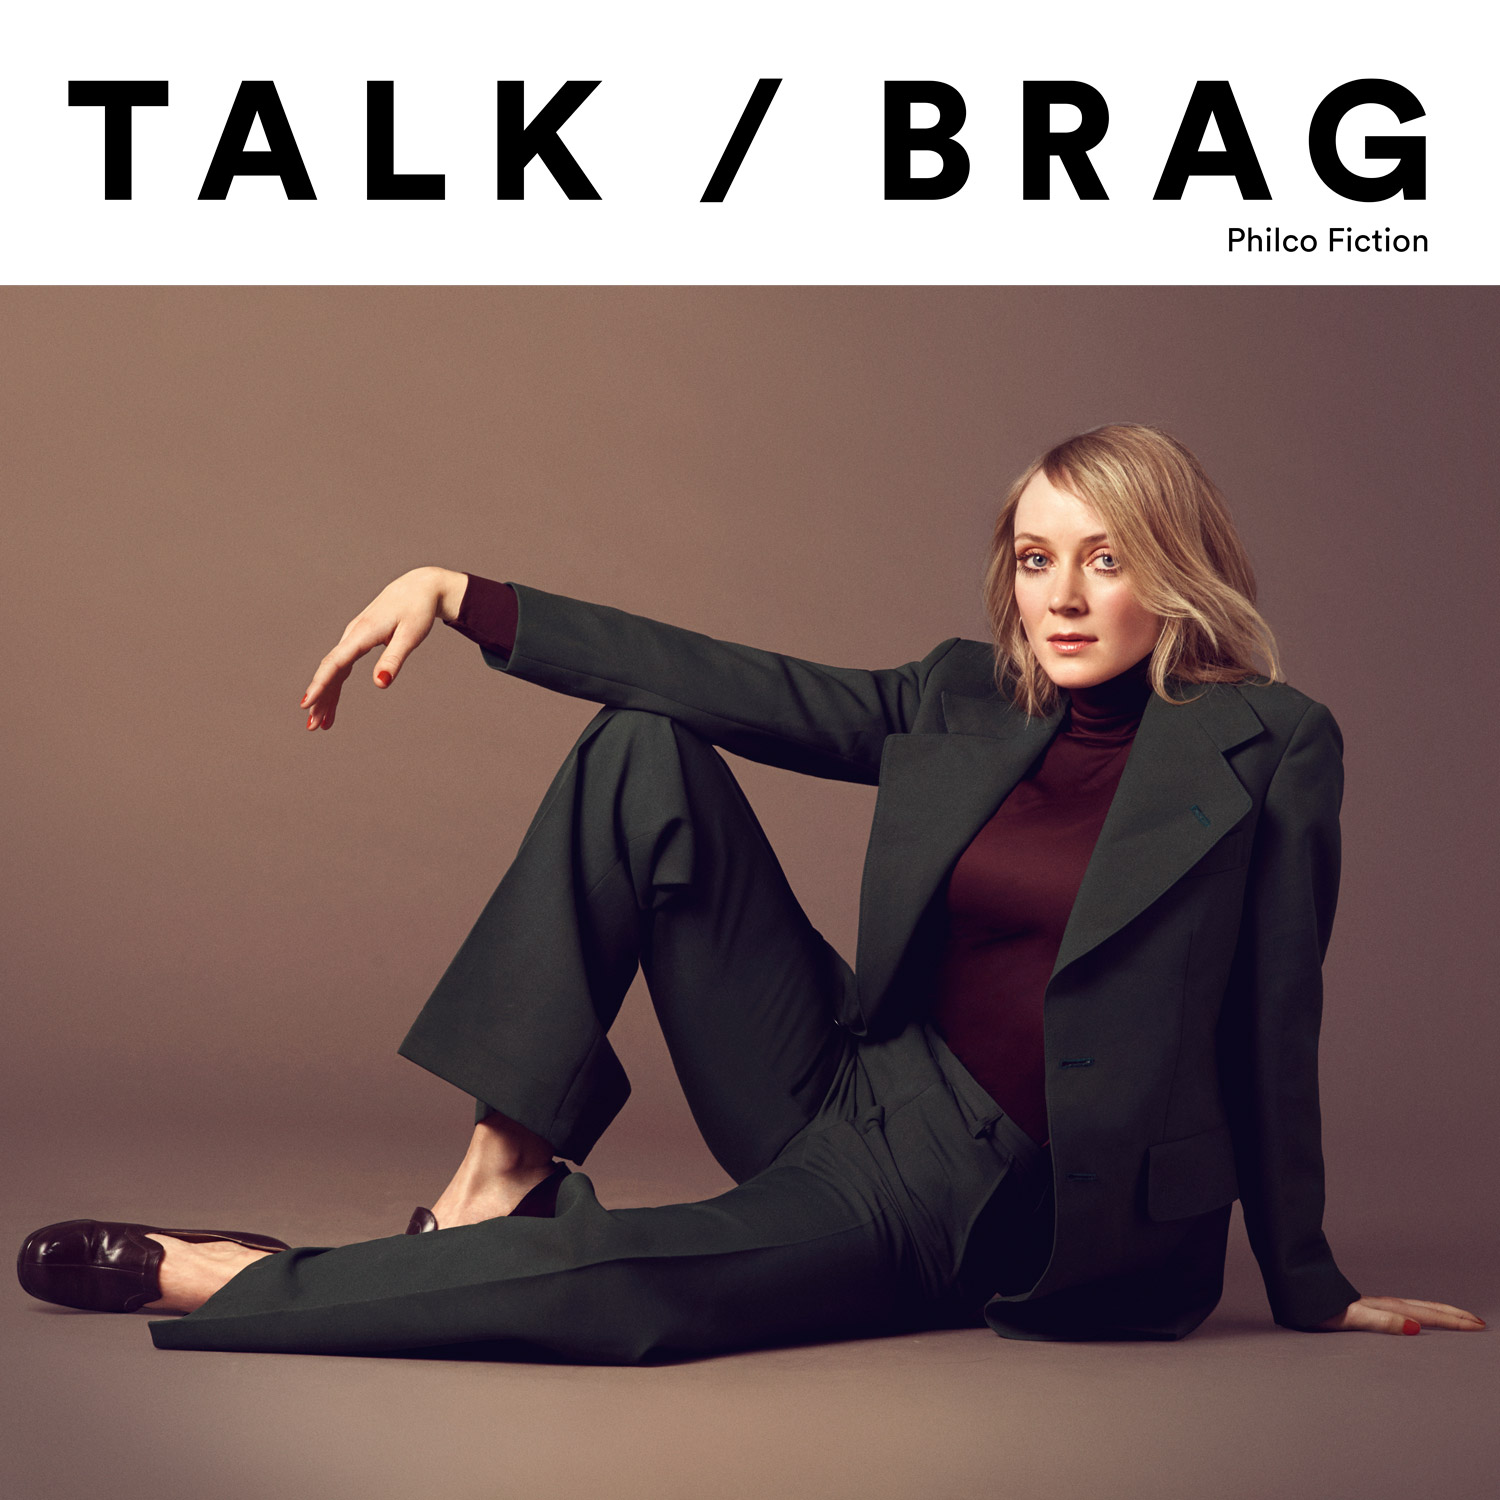 Talk_Brag Artwork